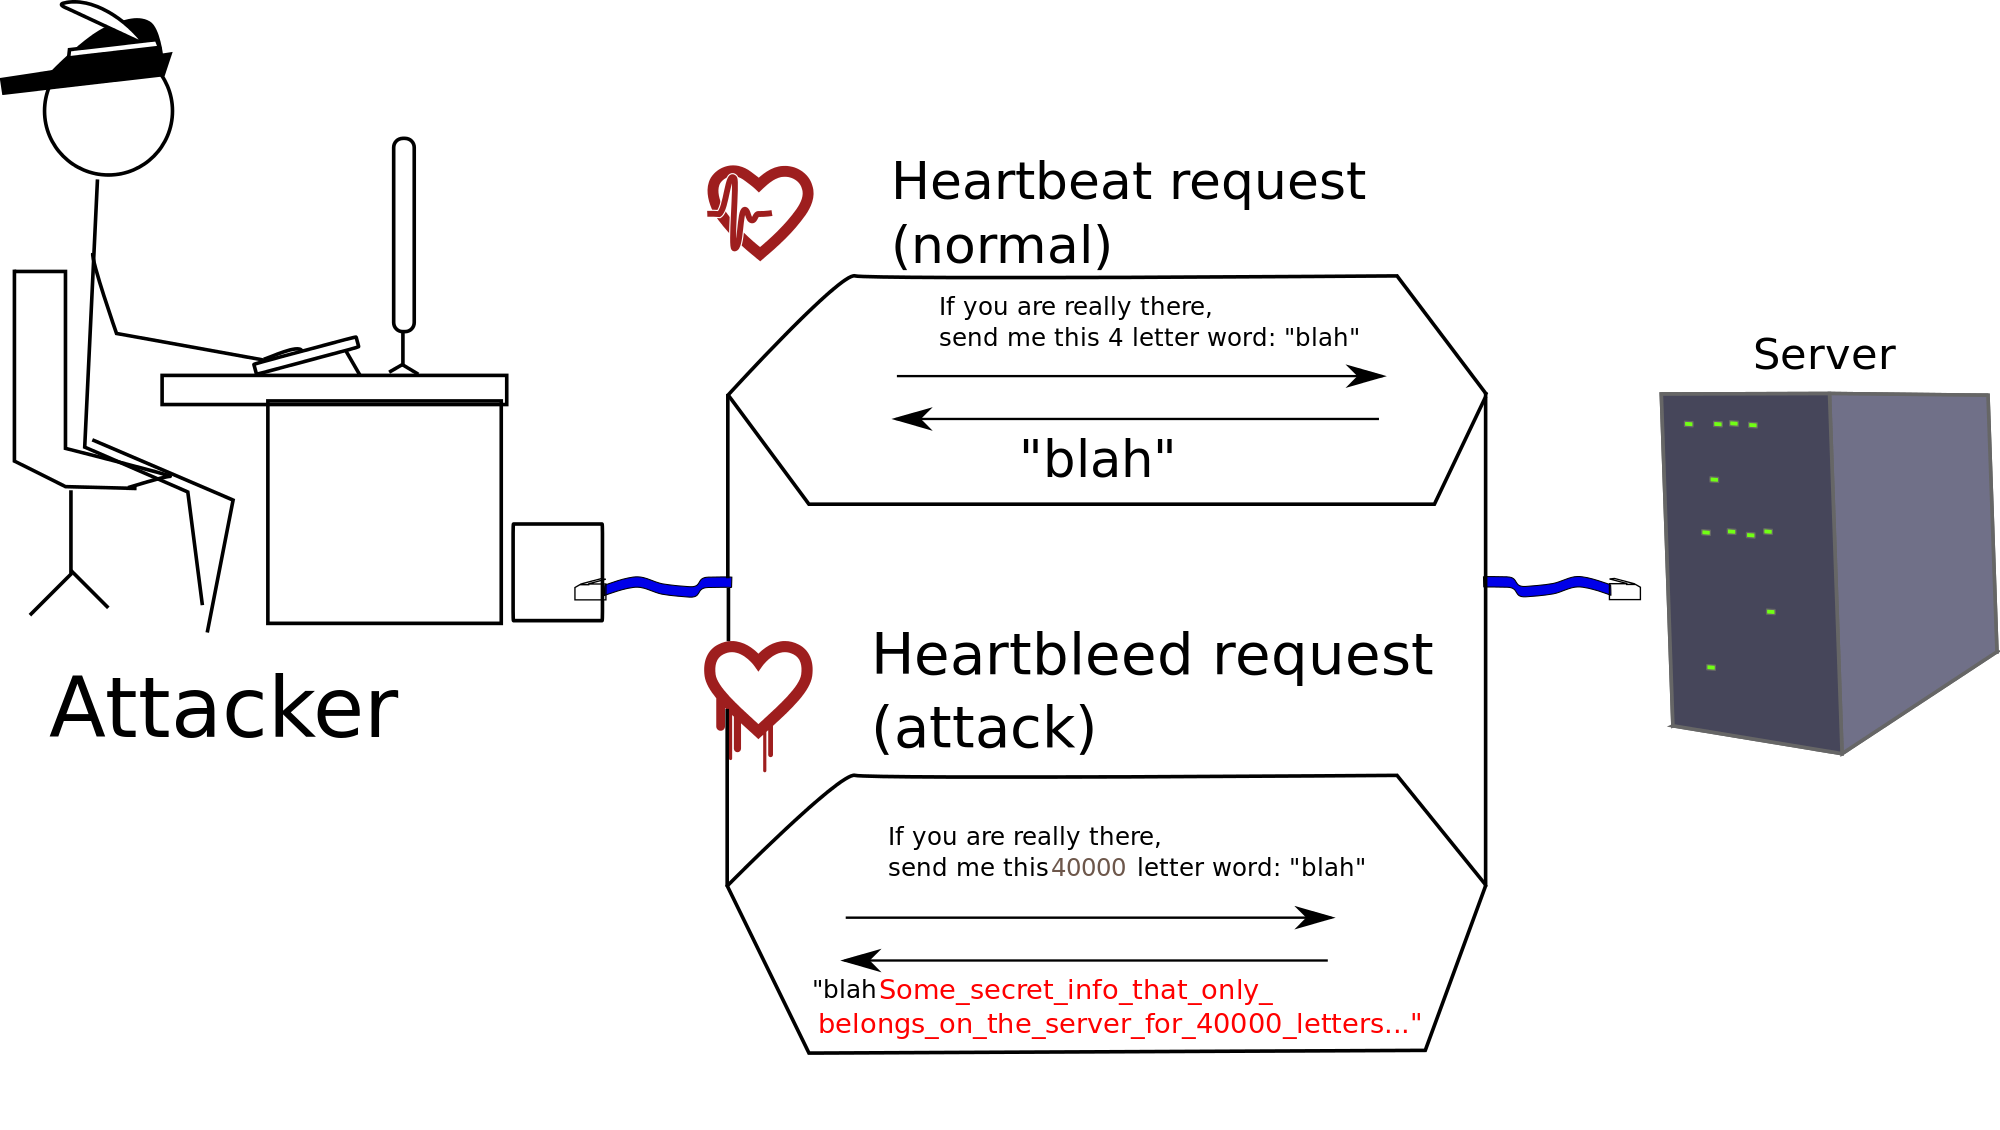 OpenSSL and the Heartbleed Bug